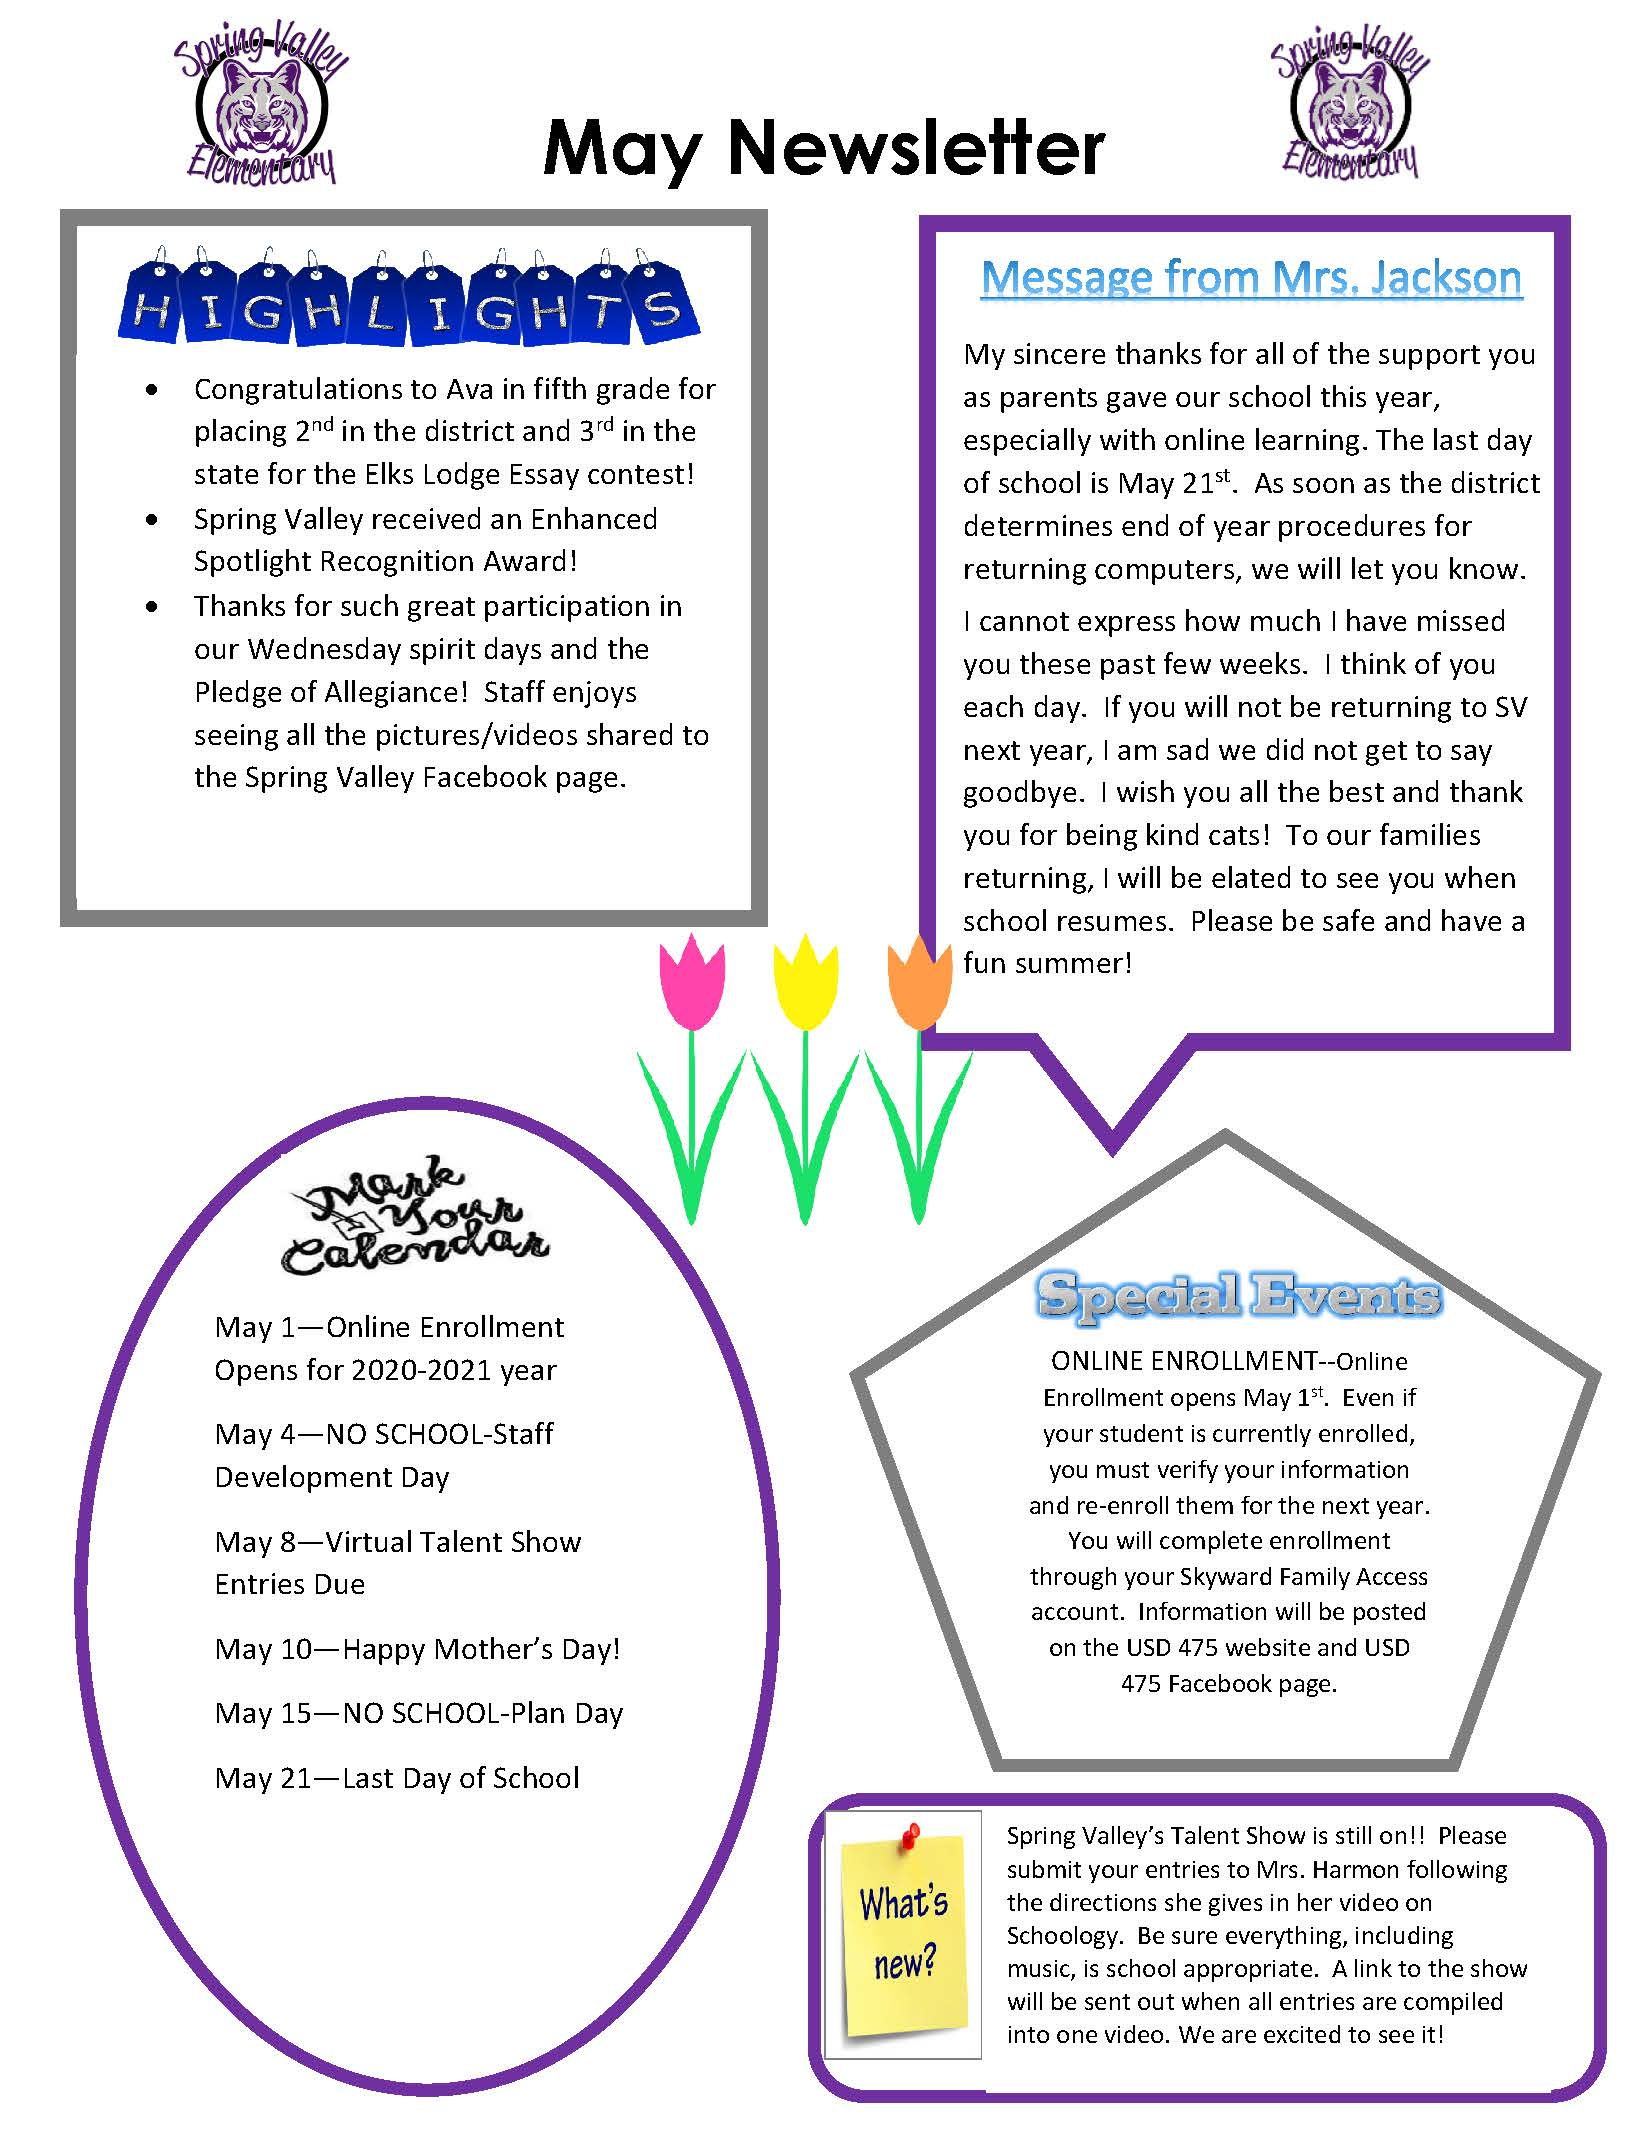 Photograph of May Newsletter